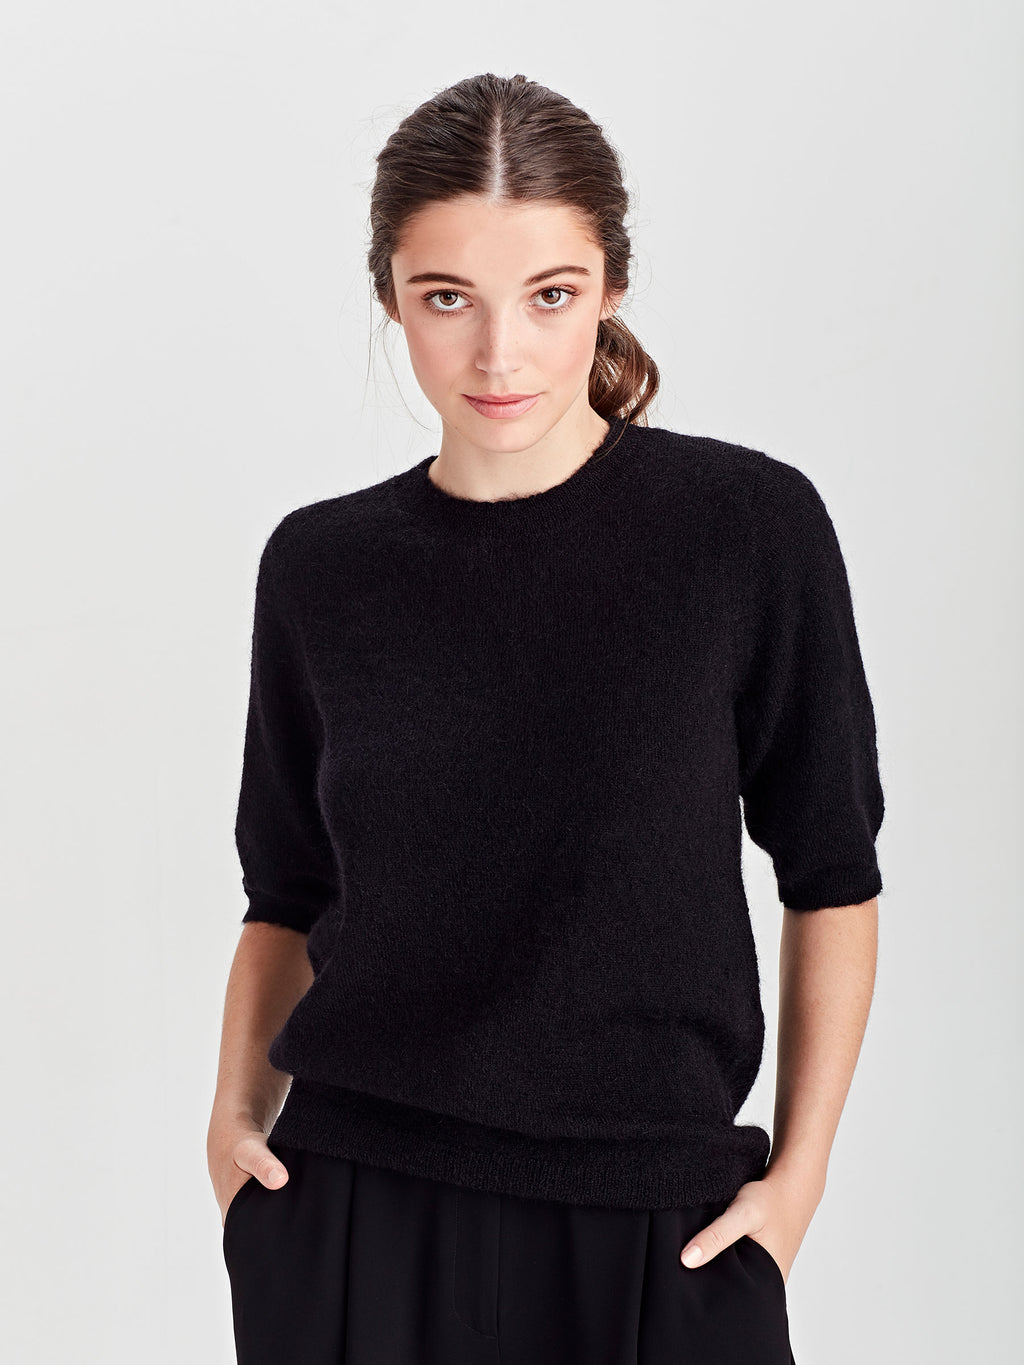 Beckett T (Mohair) Black